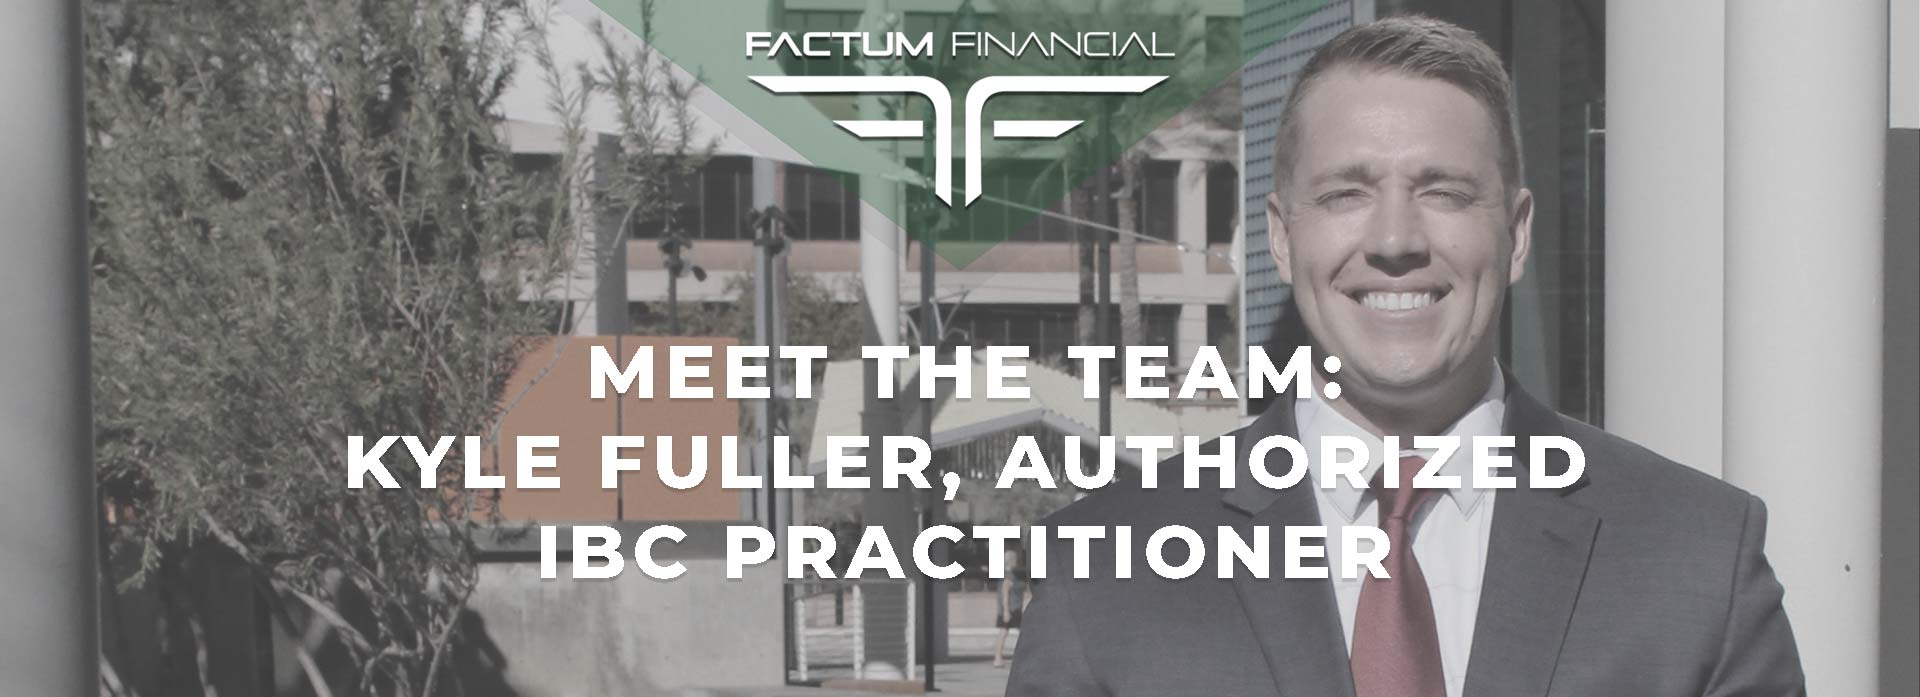 Meet The Team: Kyle Fuller, Authorized IBC Practitioner